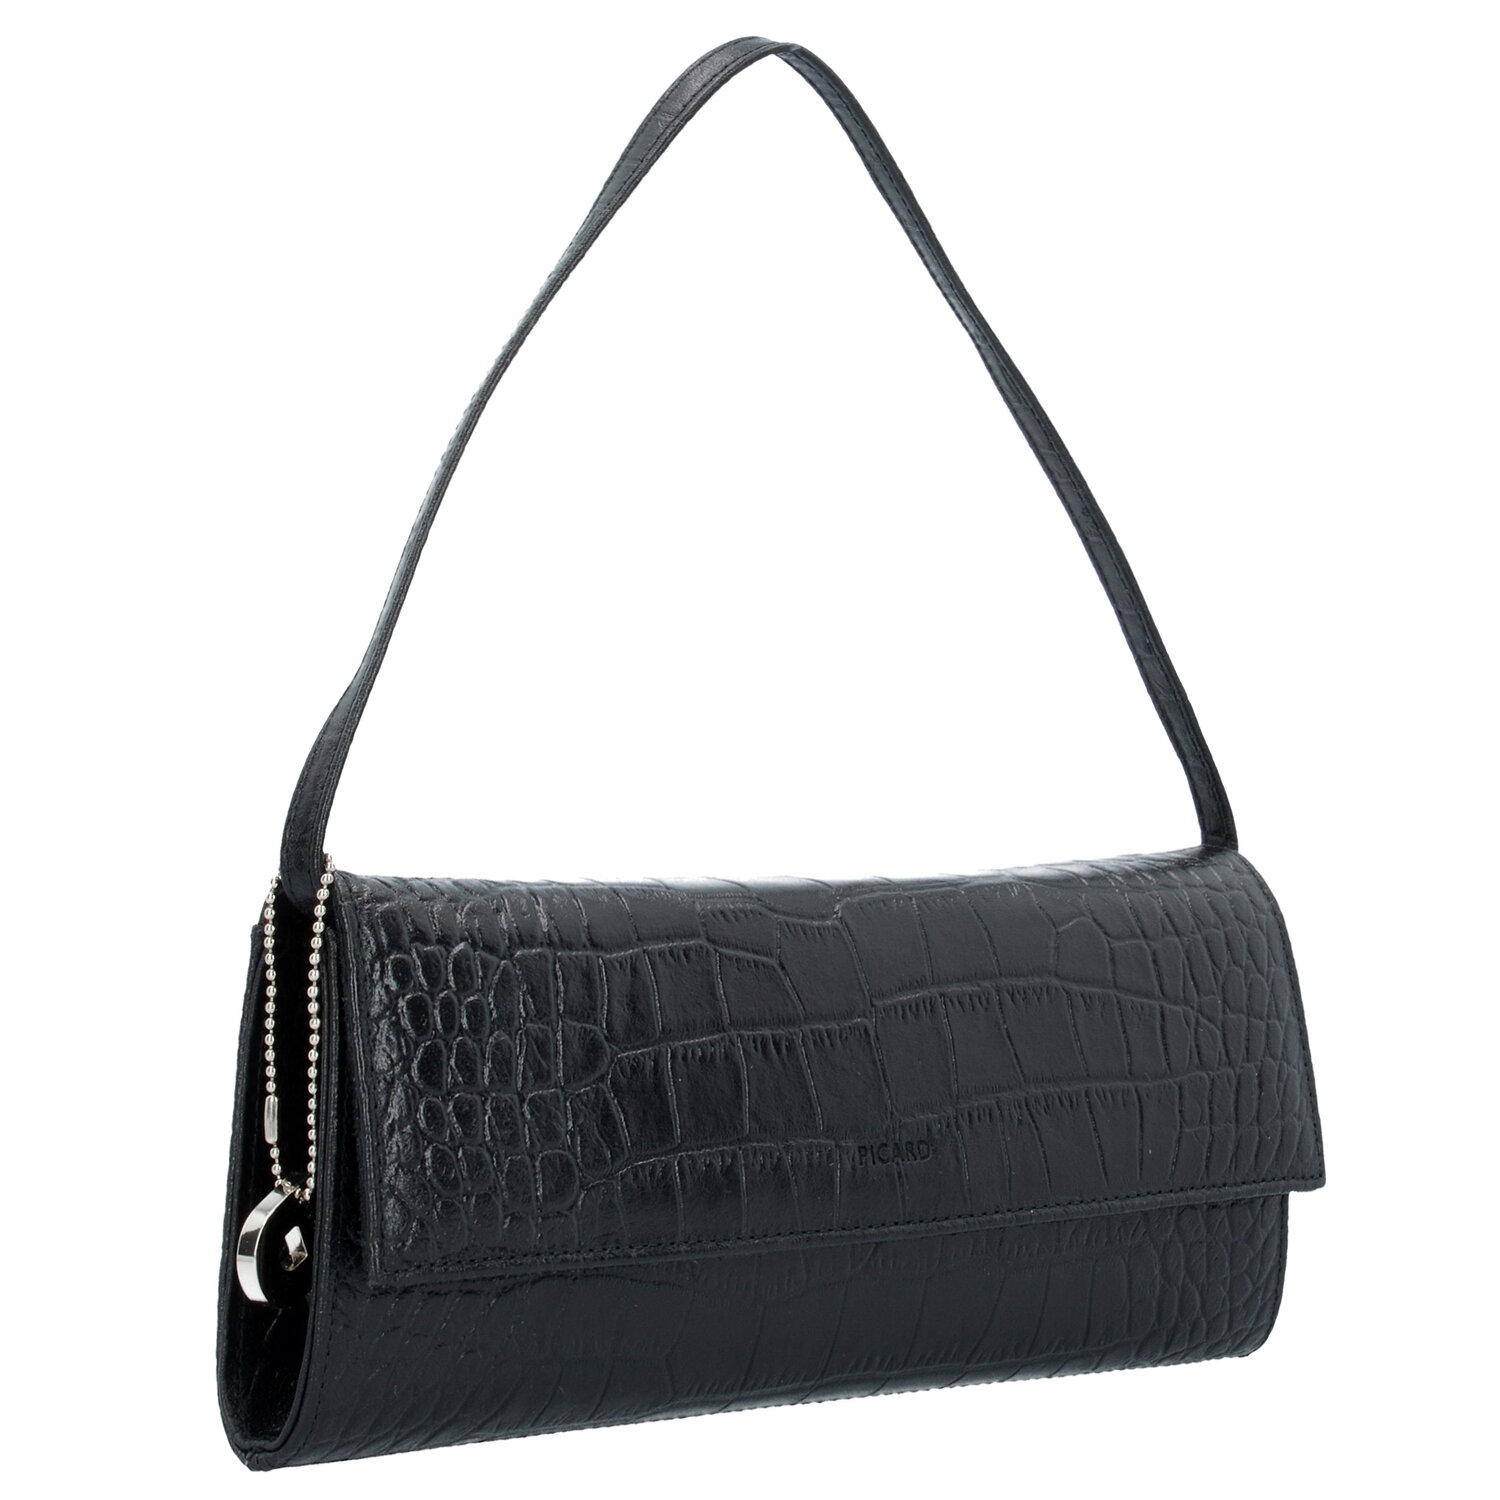 picard auguri clutch tasche leder 26 cm schwarz lack. Black Bedroom Furniture Sets. Home Design Ideas